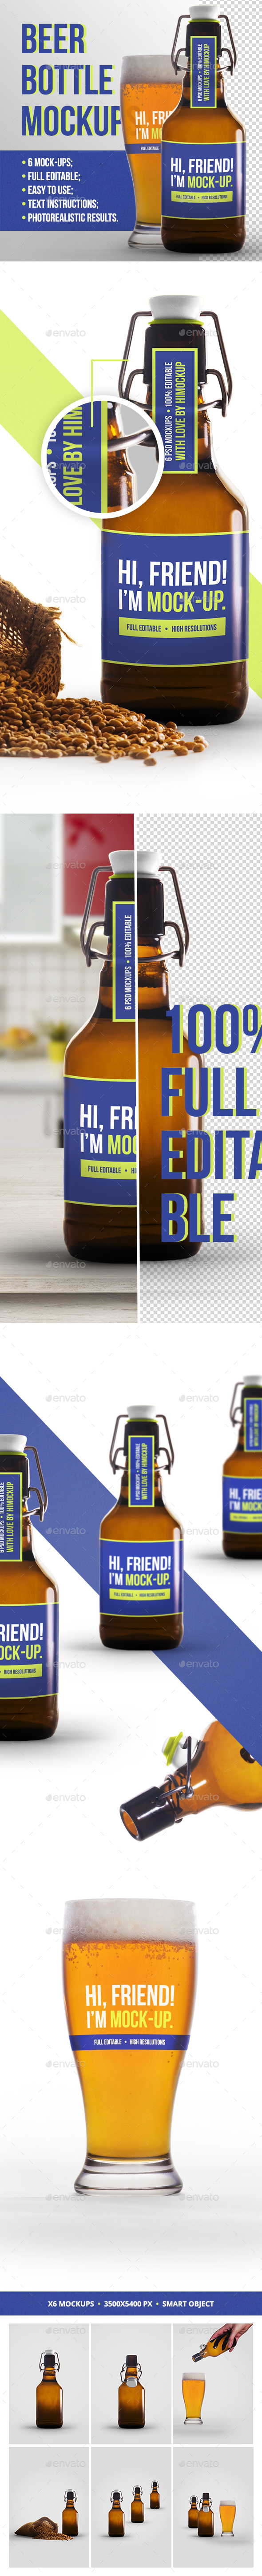 Beer Bottle Mockup - Food and Drink Packaging